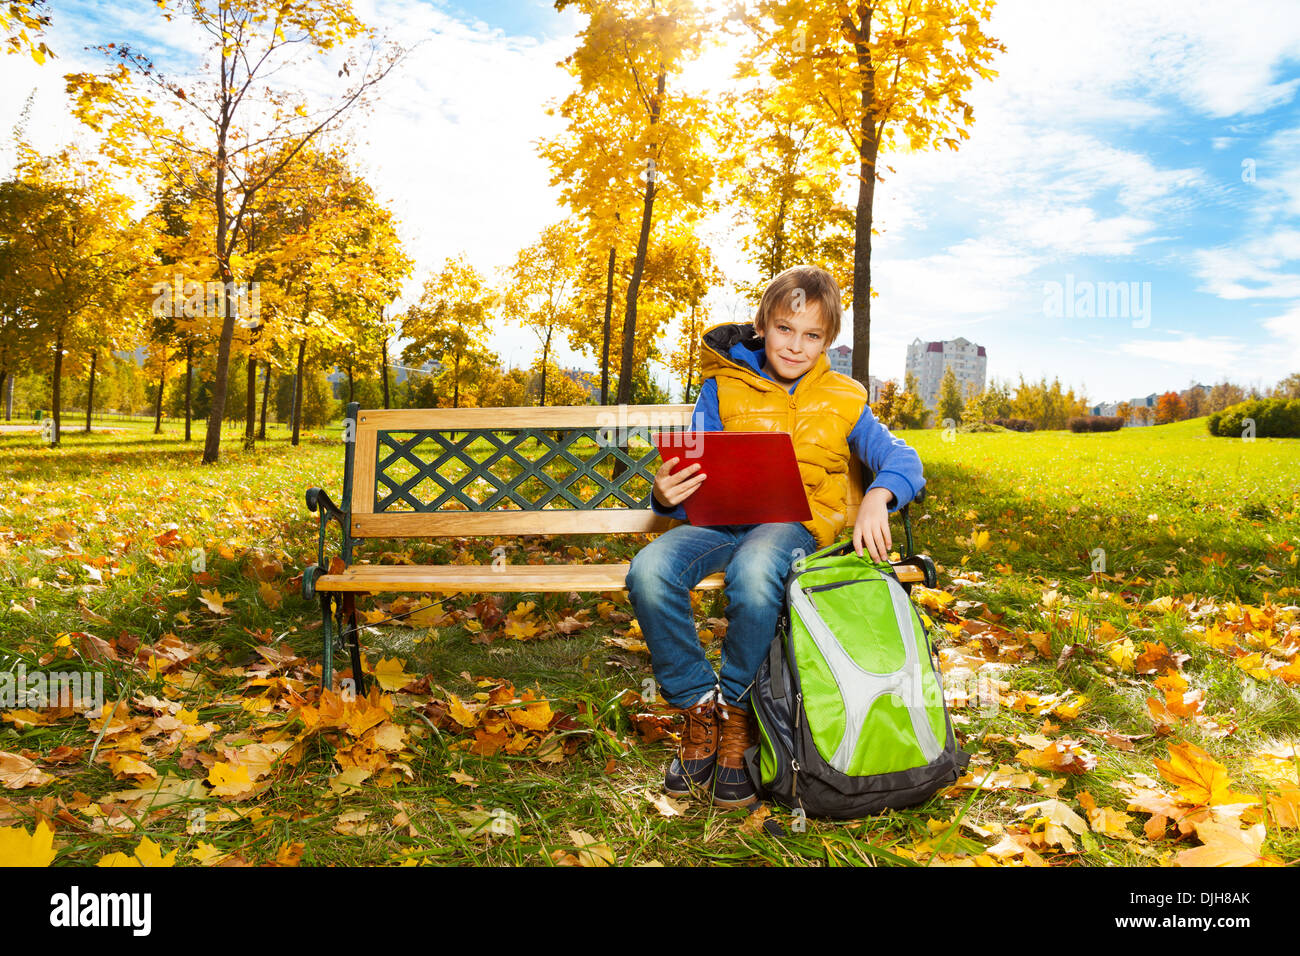 ac2dc8dbd7bd Happy 10 years old boy sitting on the bench with rucksack with backpack  after school with paper folder